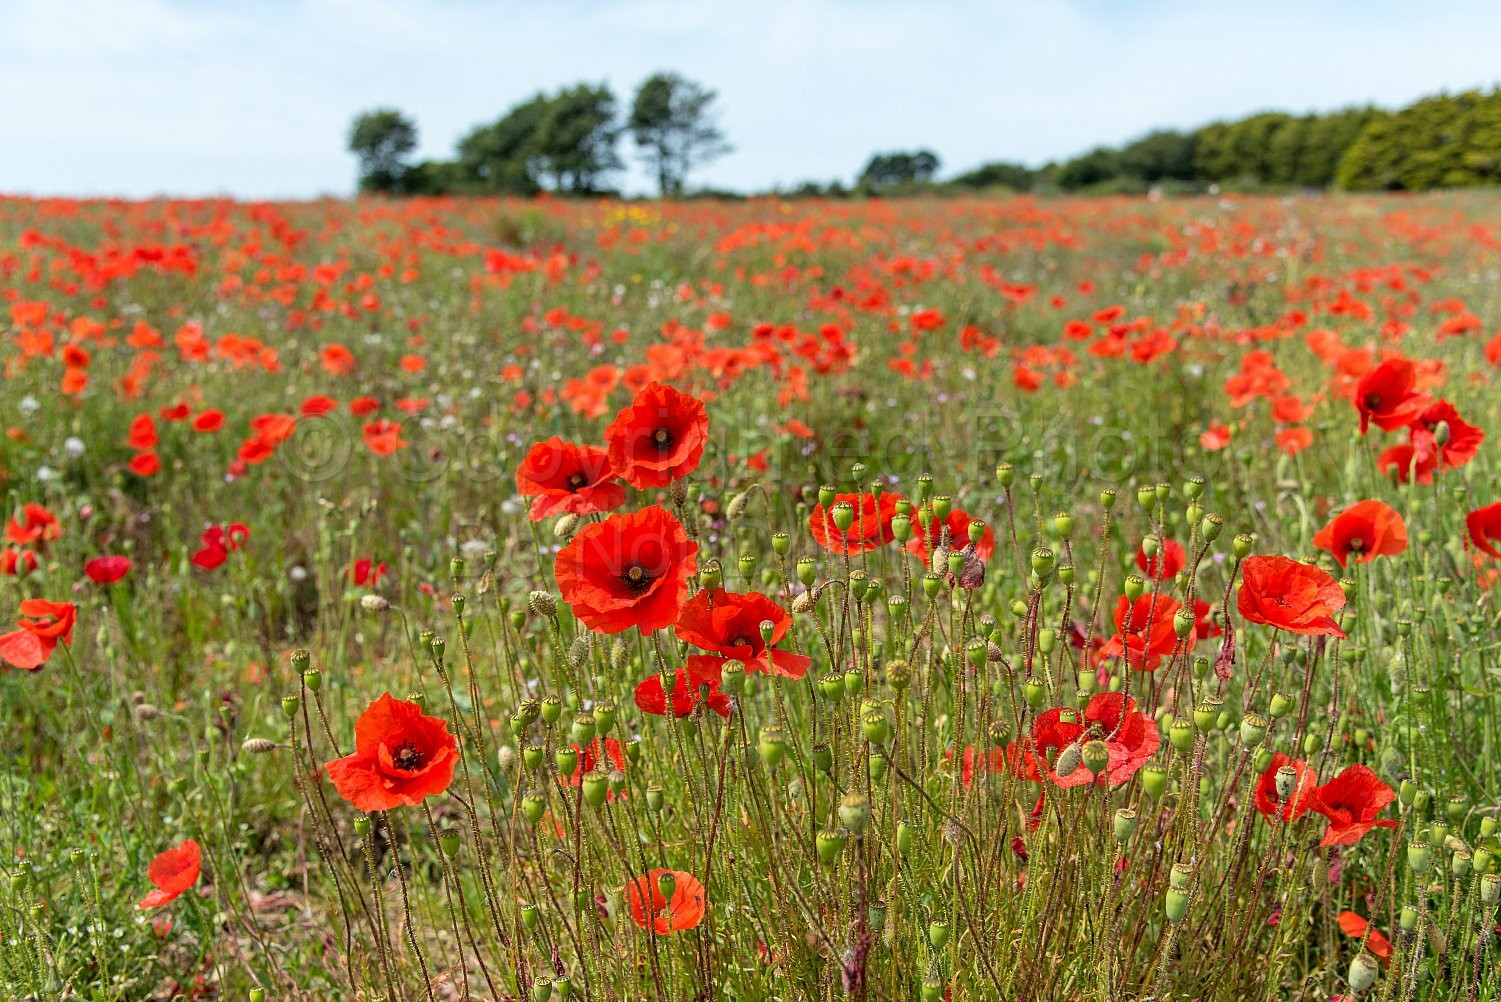 Poppies dancing in the fields